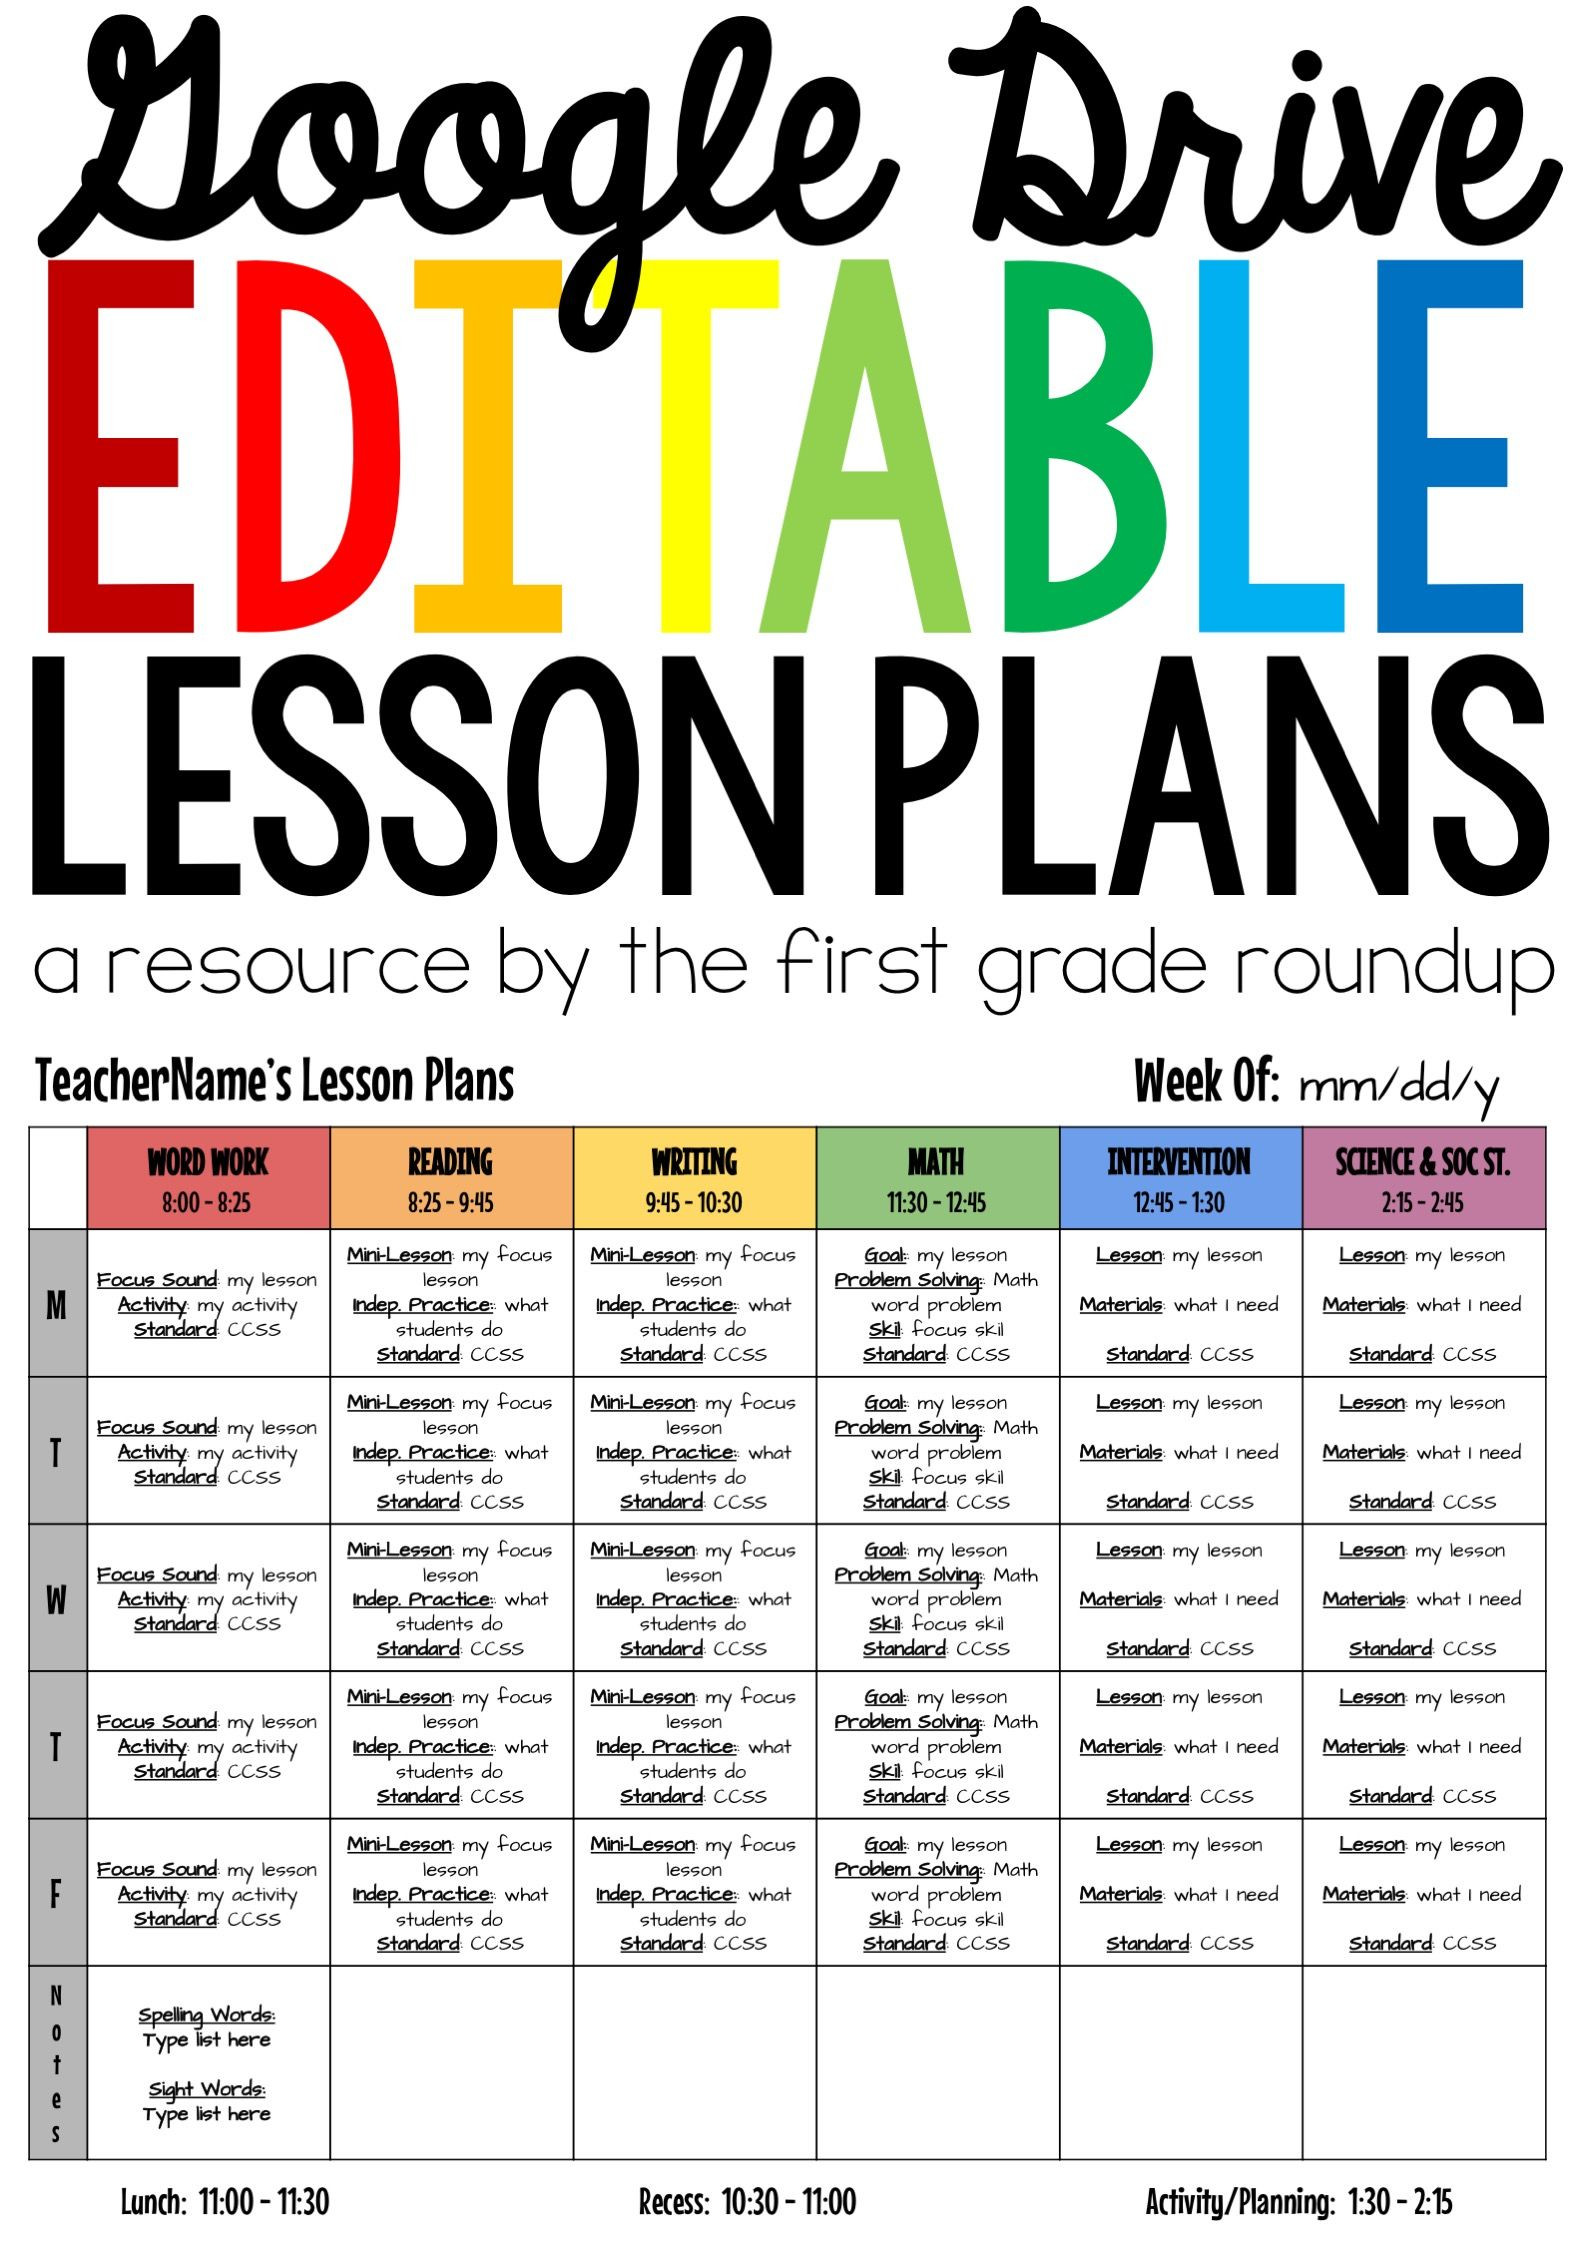 Lesson Plan Templates EDITABLE patible with Google Drive